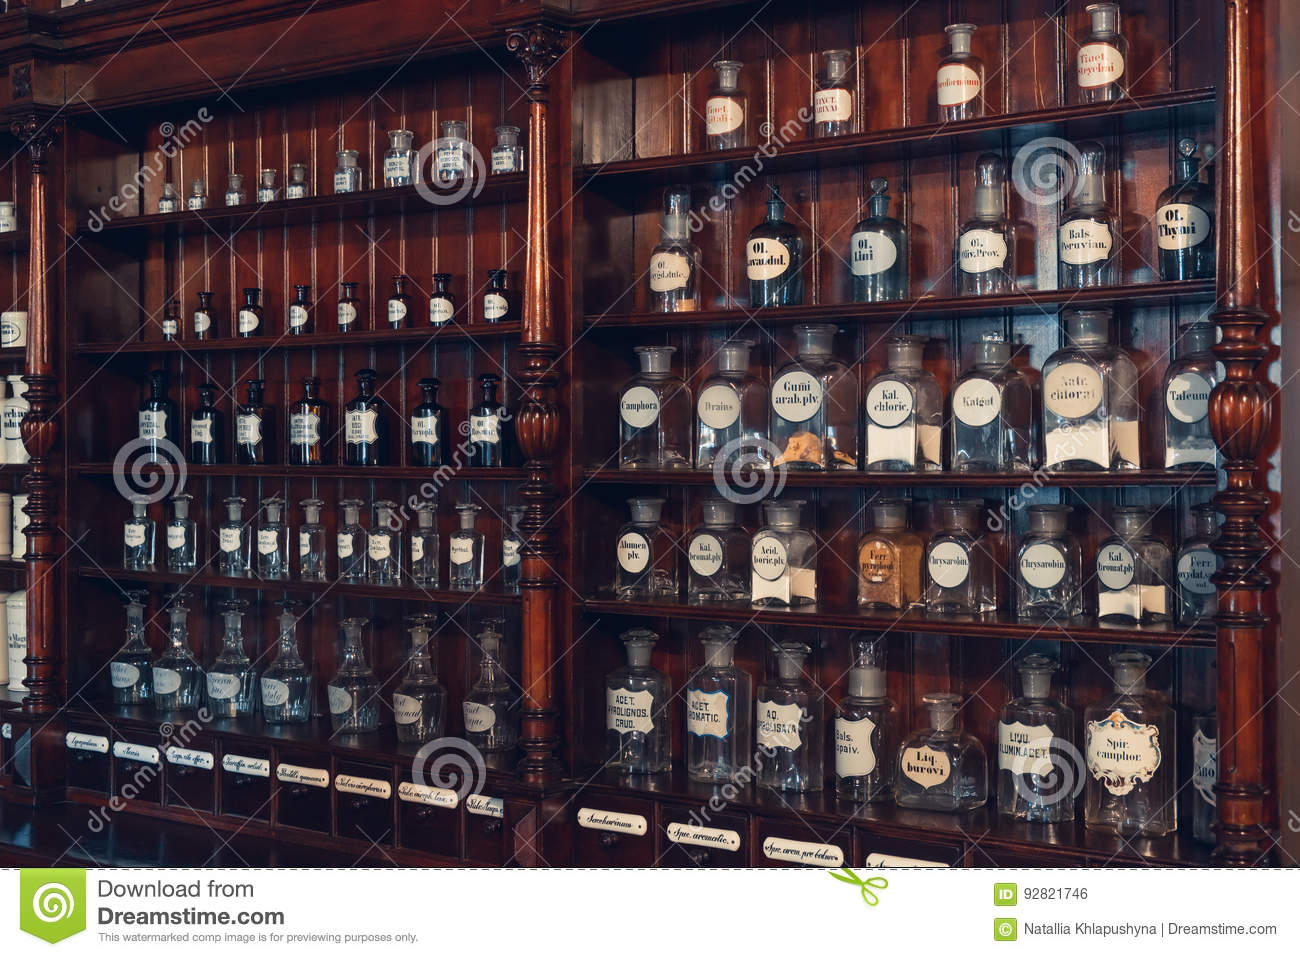 Kaunas, Lithuania - May 12, 2017: cabinet of drugs in Museum of Medicine.